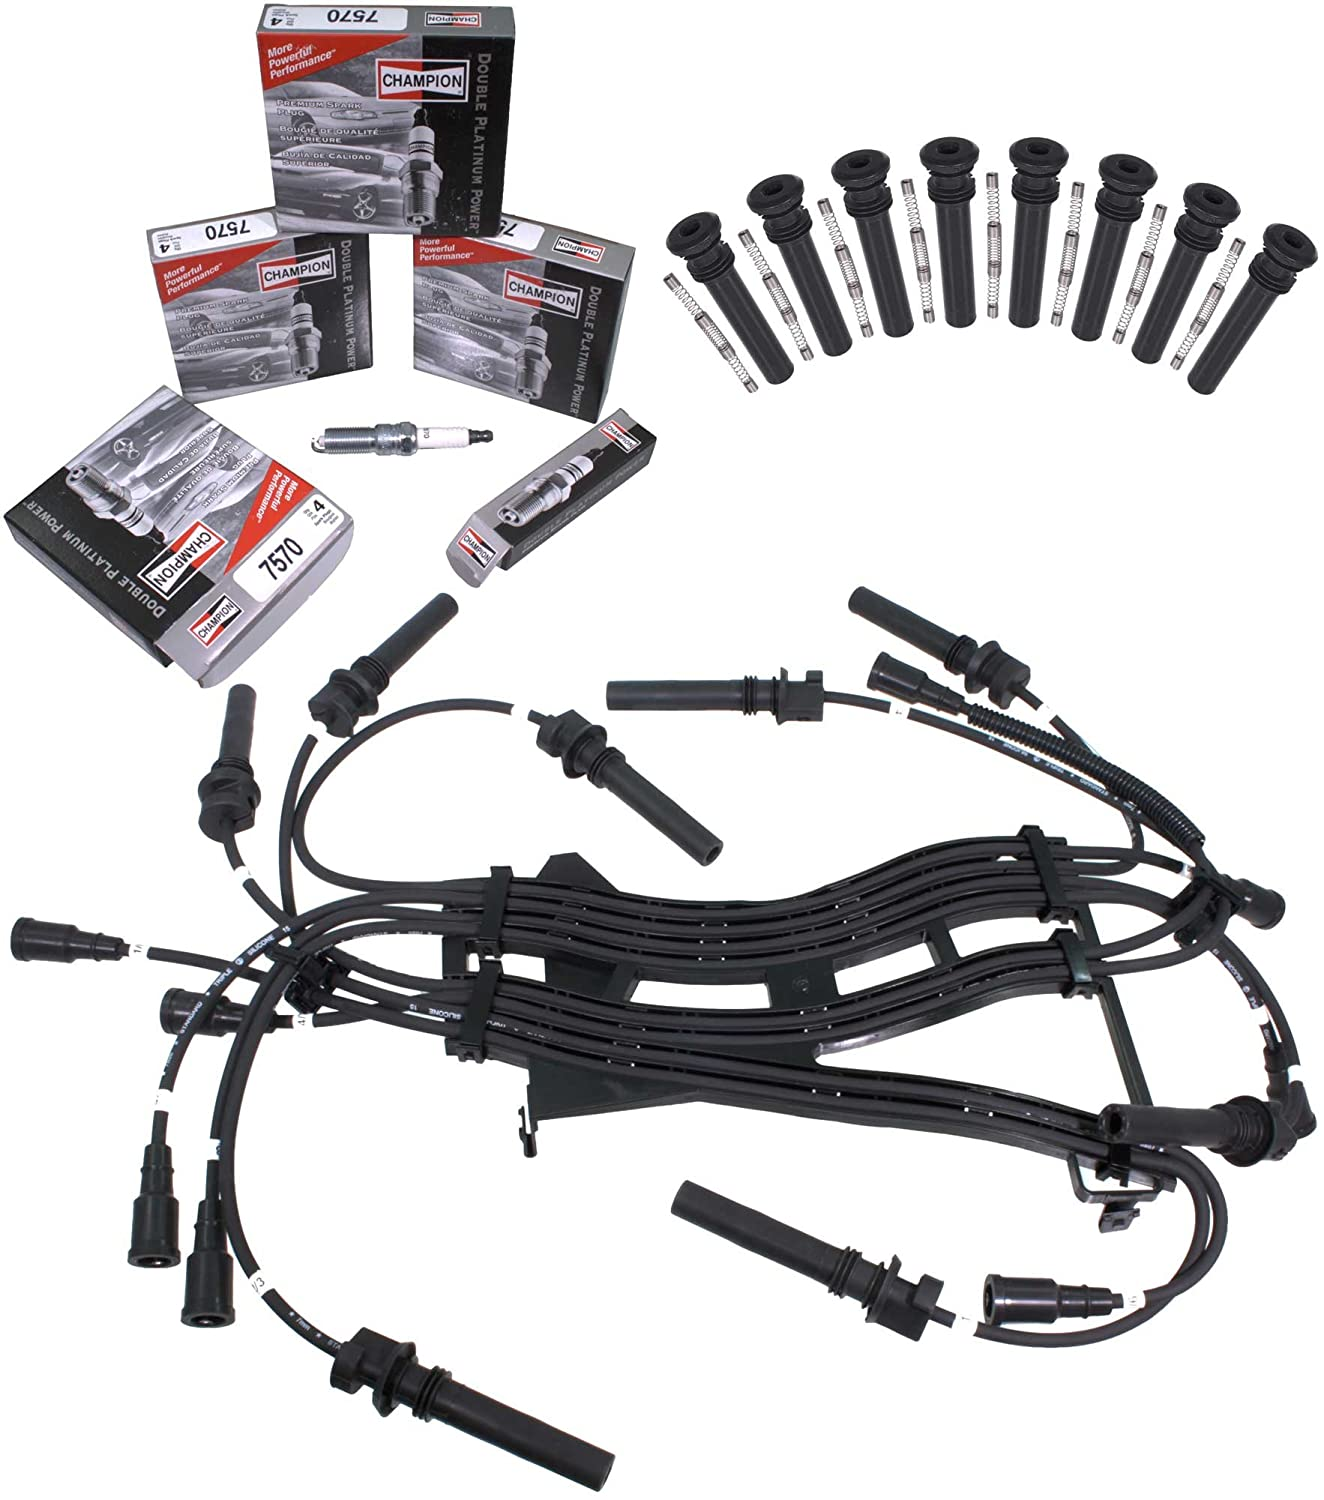 Amazon.com: APDTY Tune Up Kit Includes 16 OEM Spark Plugs, 16 Ignition Wires  & COP Coil On Plug Boots Fits 2003-2005 Dodge Ram Pickups With 5.7L Hemi ...